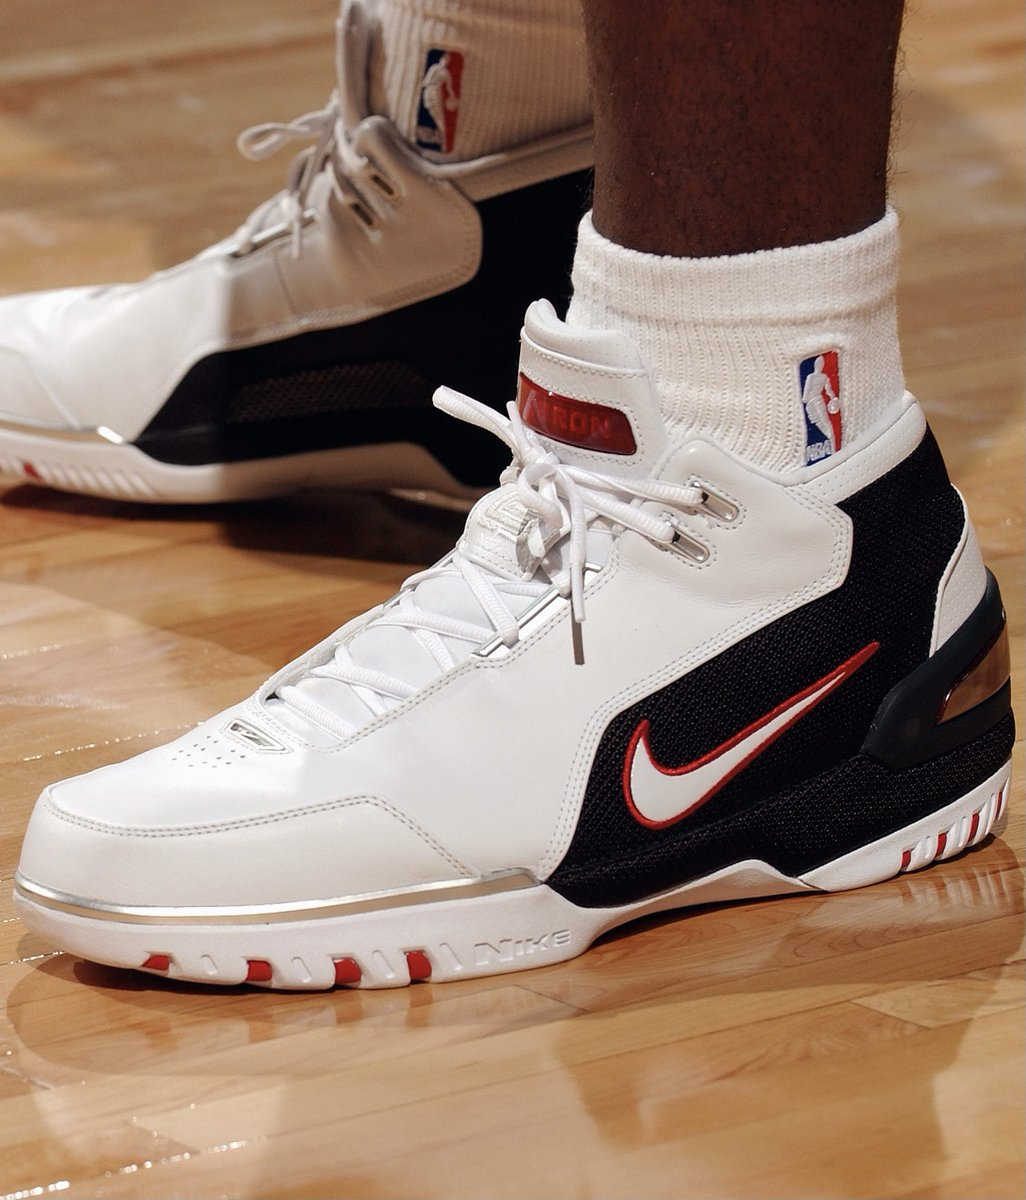 17 years ago today, @KingJames made his @NBA debut in the Nike Air Zoom Generation! #NBAKicks https://t.co/aujDzPmpgp